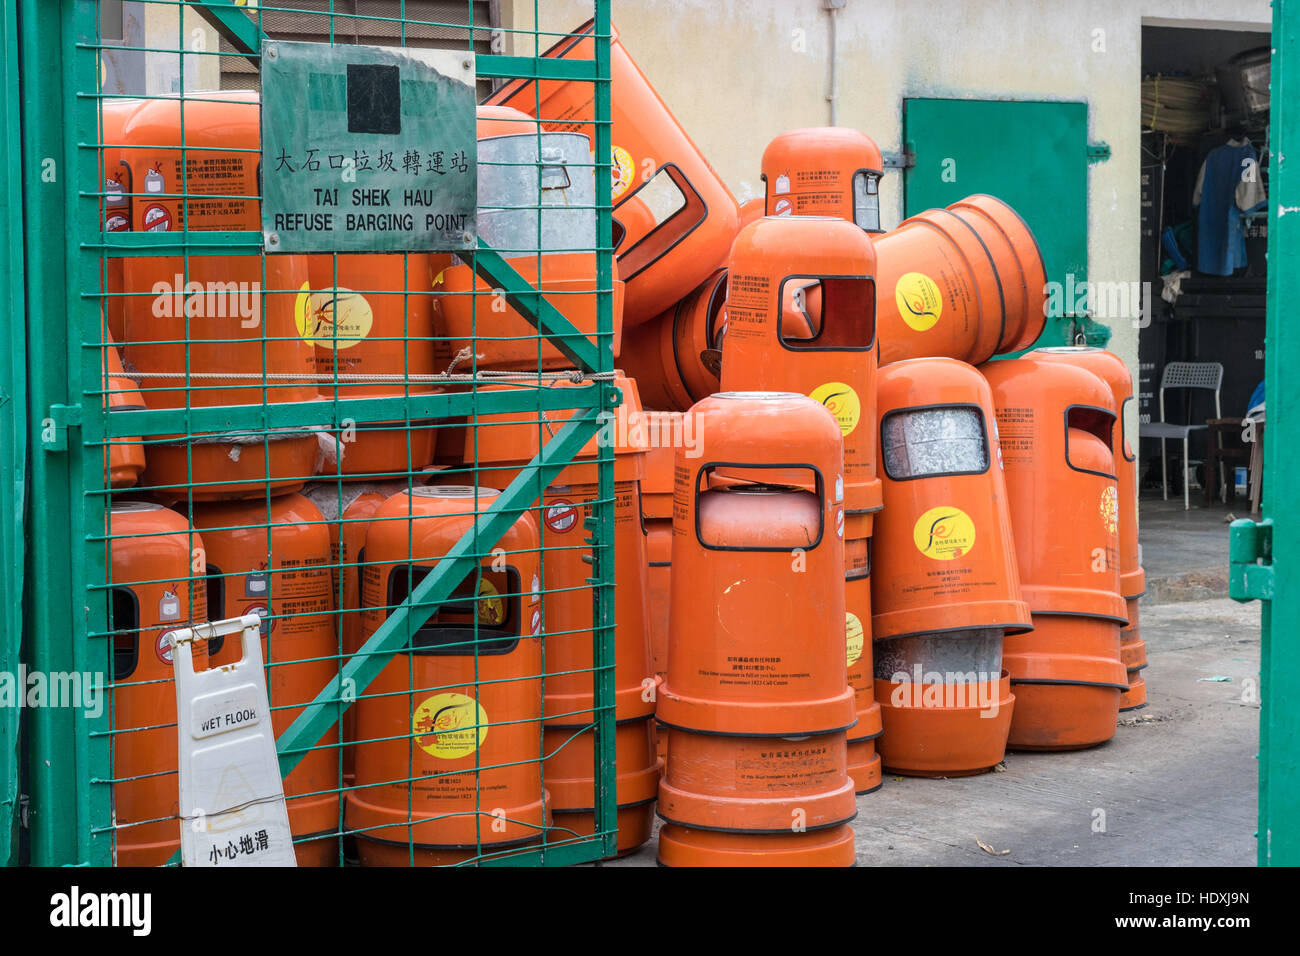 Orange rubbish bins in Hong Kong - Stock Image